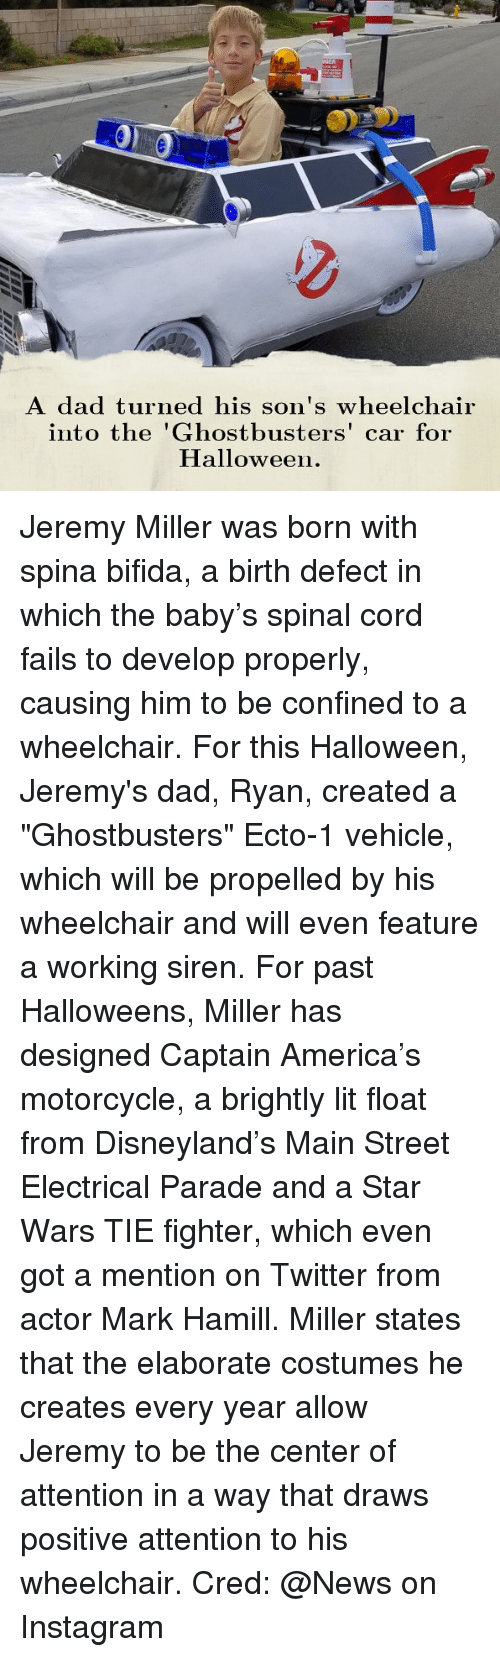 "America, Dad, and Disneyland: ク  A dad turned his son's wheelchair  into the 'Ghostbusters' car for  Halloween. Jeremy Miller was born with spina bifida, a birth defect in which the baby's spinal cord fails to develop properly, causing him to be confined to a wheelchair. For this Halloween, Jeremy's dad, Ryan, created a ""Ghostbusters"" Ecto-1 vehicle, which will be propelled by his wheelchair and will even feature a working siren. For past Halloweens, Miller has designed Captain America's motorcycle, a brightly lit float from Disneyland's Main Street Electrical Parade and a Star Wars TIE fighter, which even got a mention on Twitter from actor Mark Hamill. Miller states that the elaborate costumes he creates every year allow Jeremy to be the center of attention in a way that draws positive attention to his wheelchair. Cred: @News on Instagram"